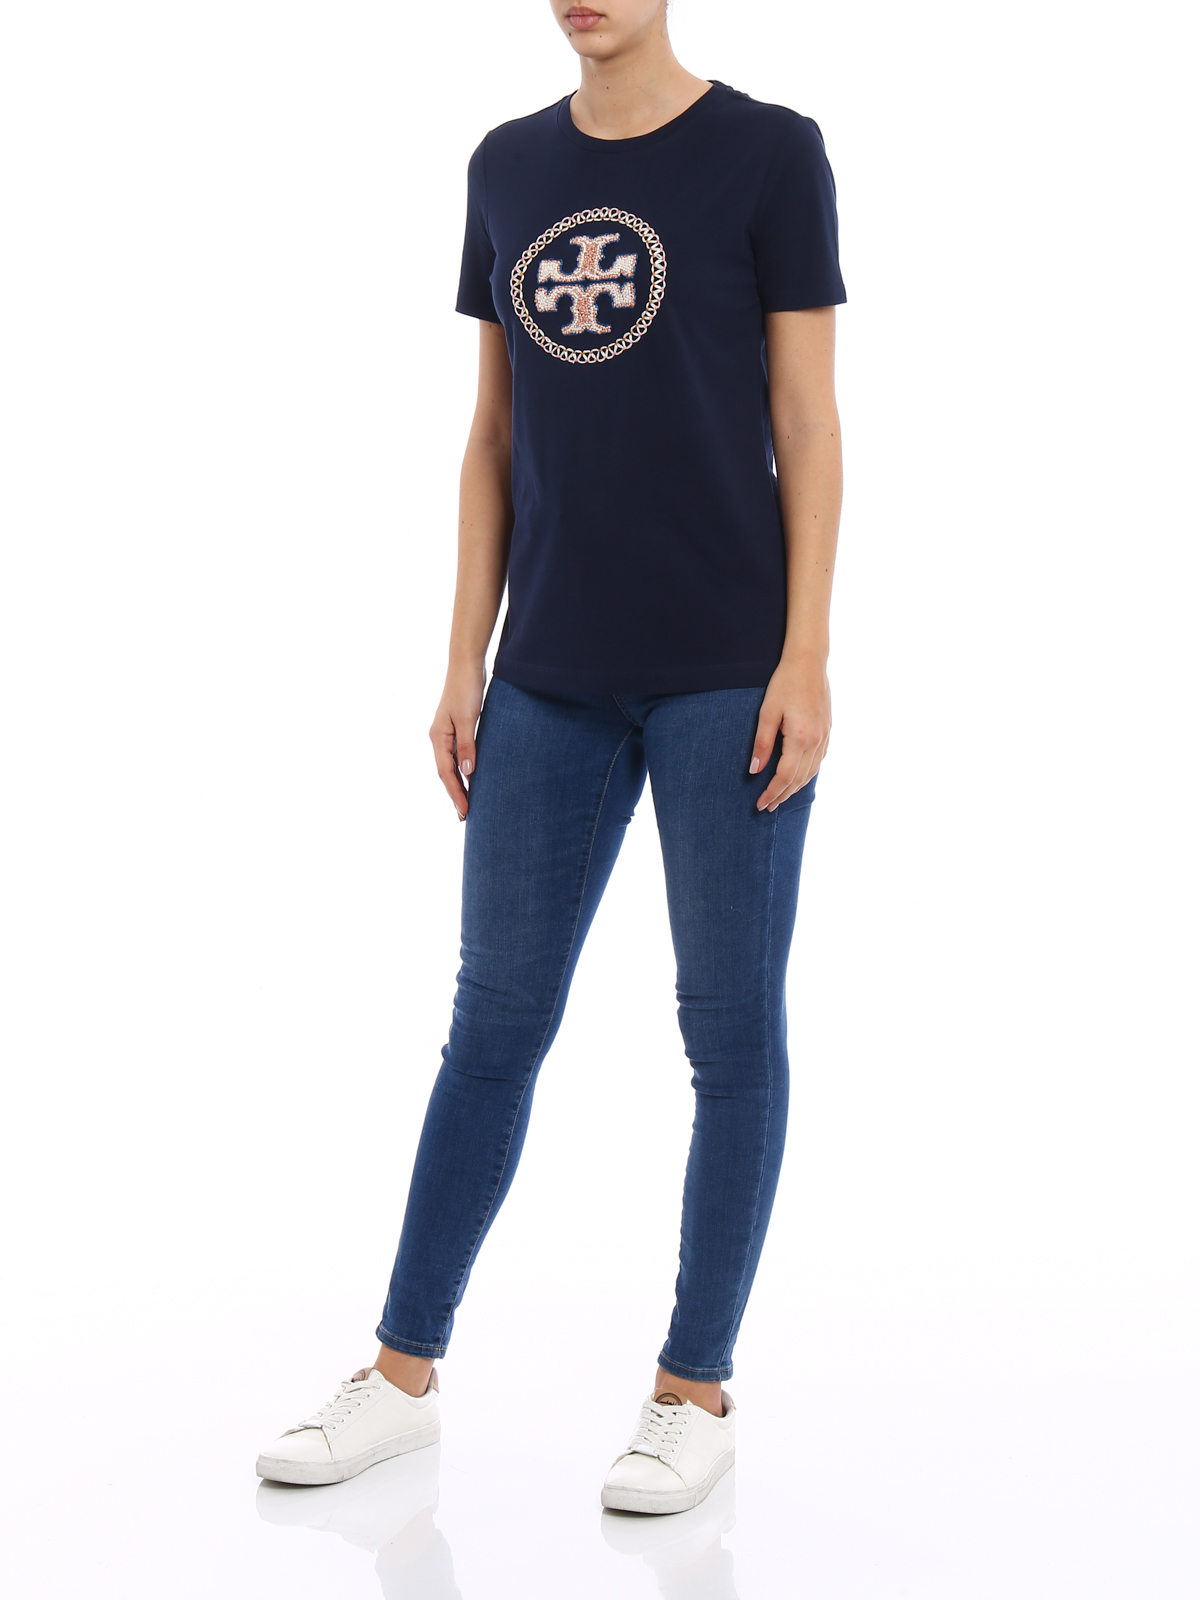 Maya embroidered logo t shirt by tory burch t shirts ikrix tory burch t shirts online maya embroidered logo t shirt buycottarizona Images